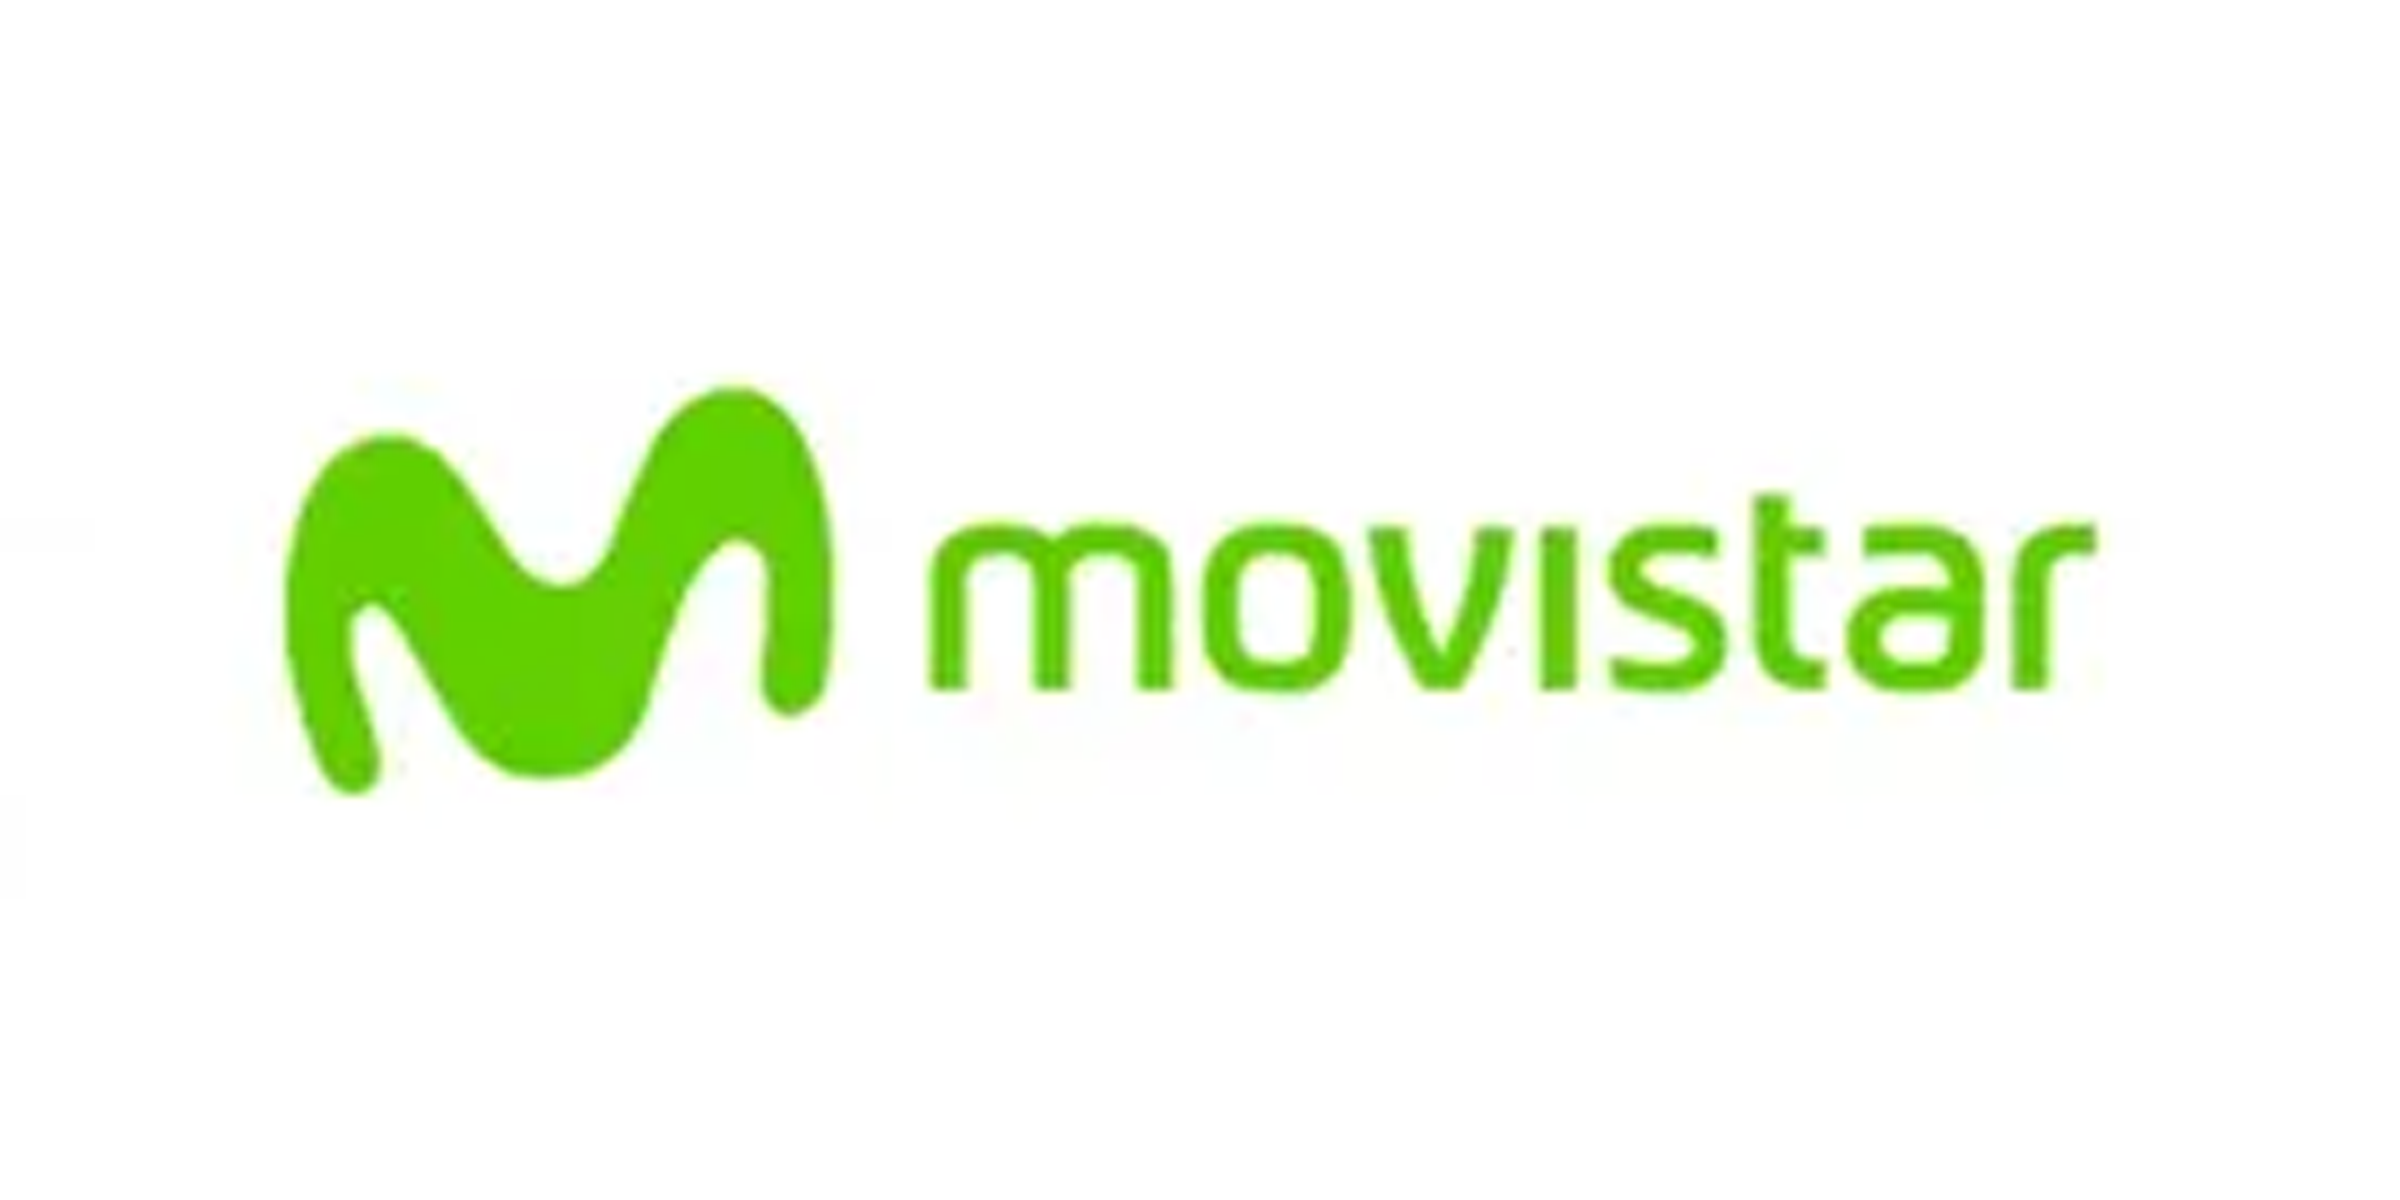 https://www.movistar.es/particulares/movil/moviles